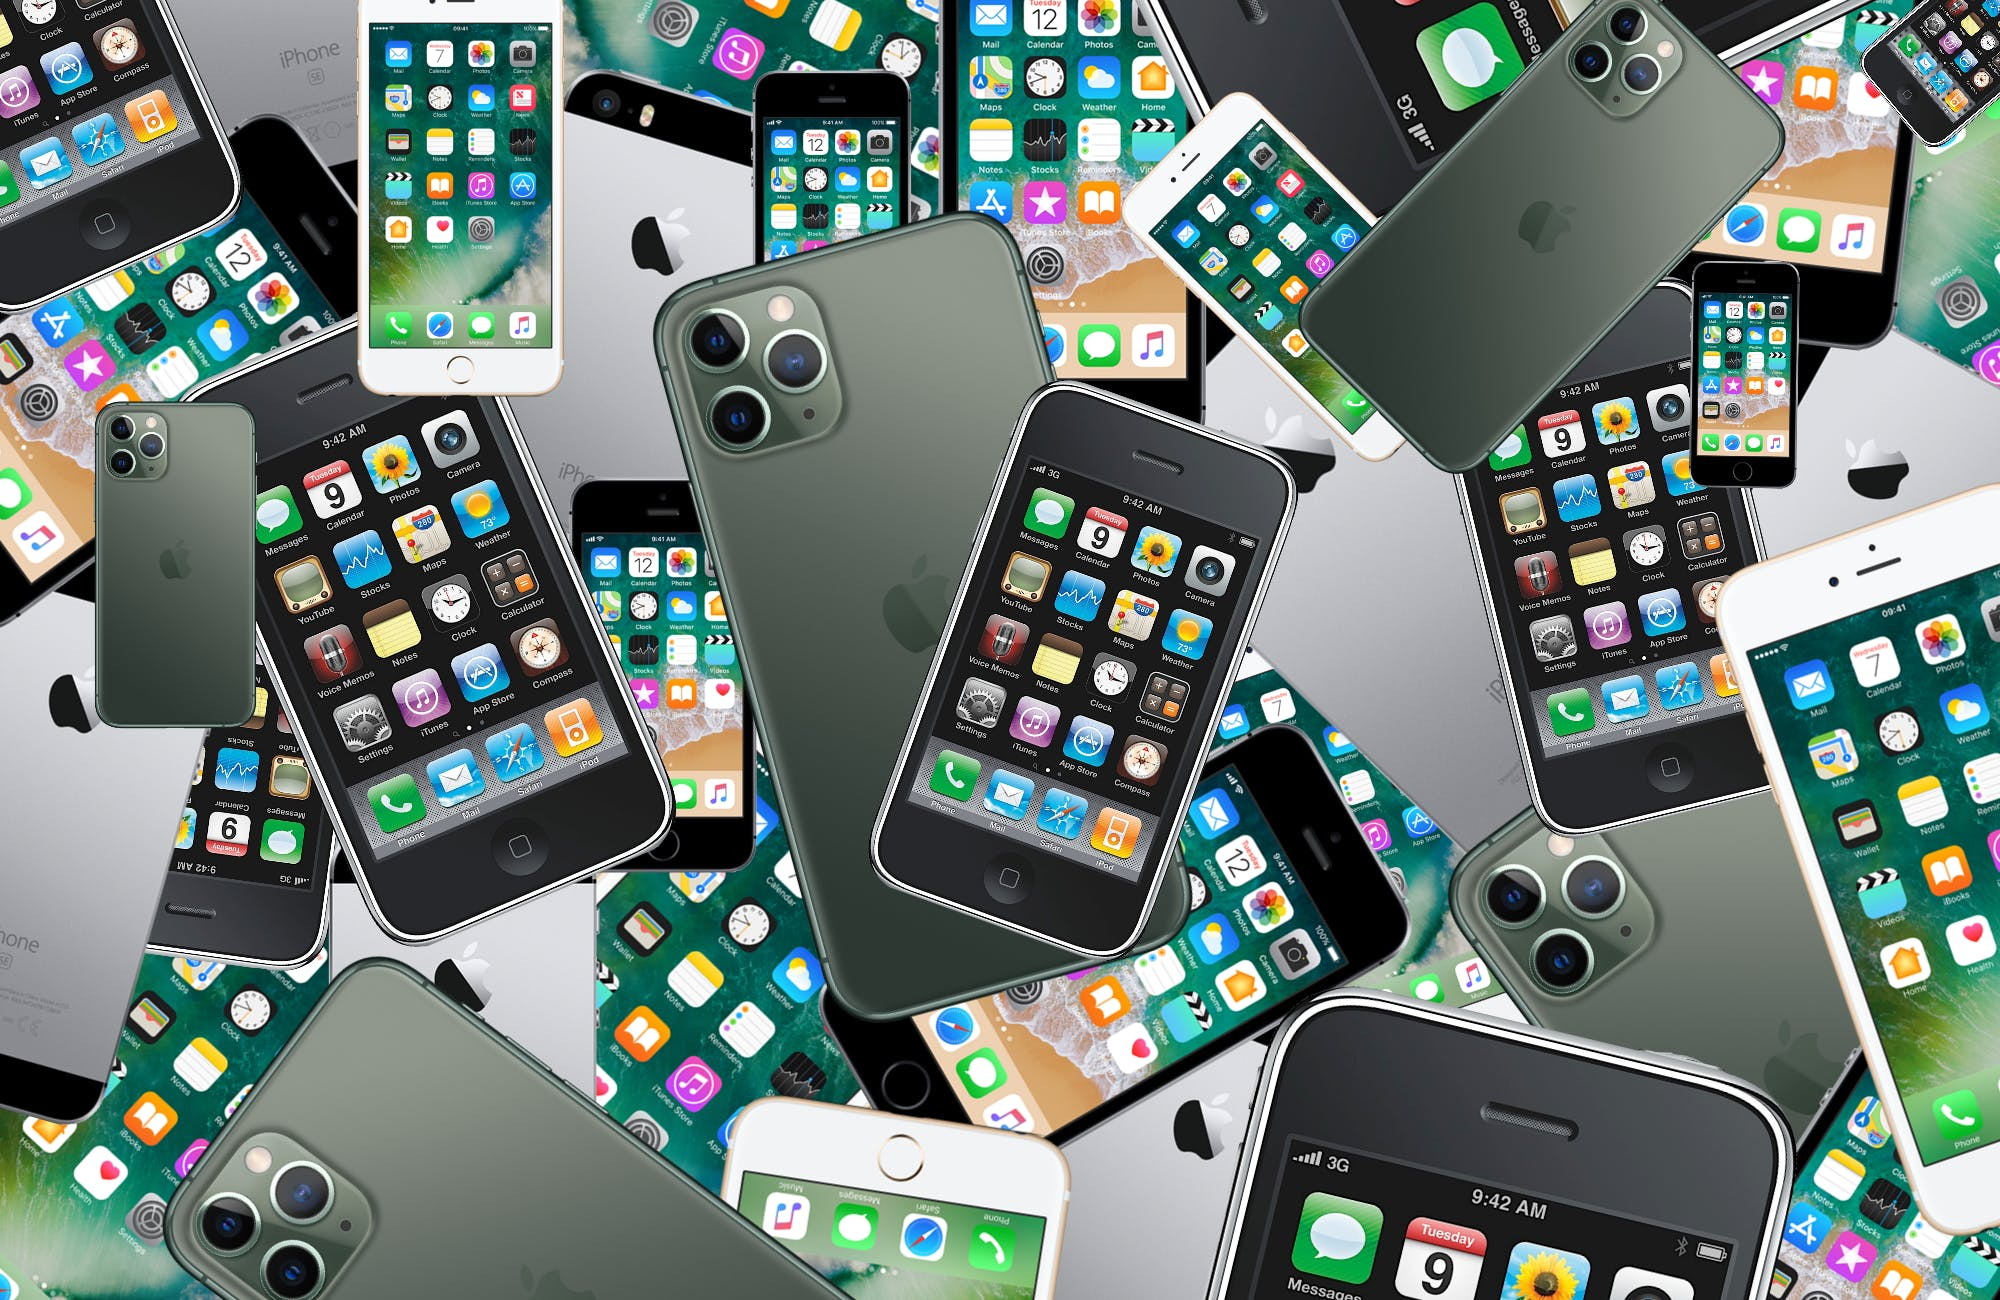 iPhone Lifecycle: What Is The Carbon Footprint of an iPhone